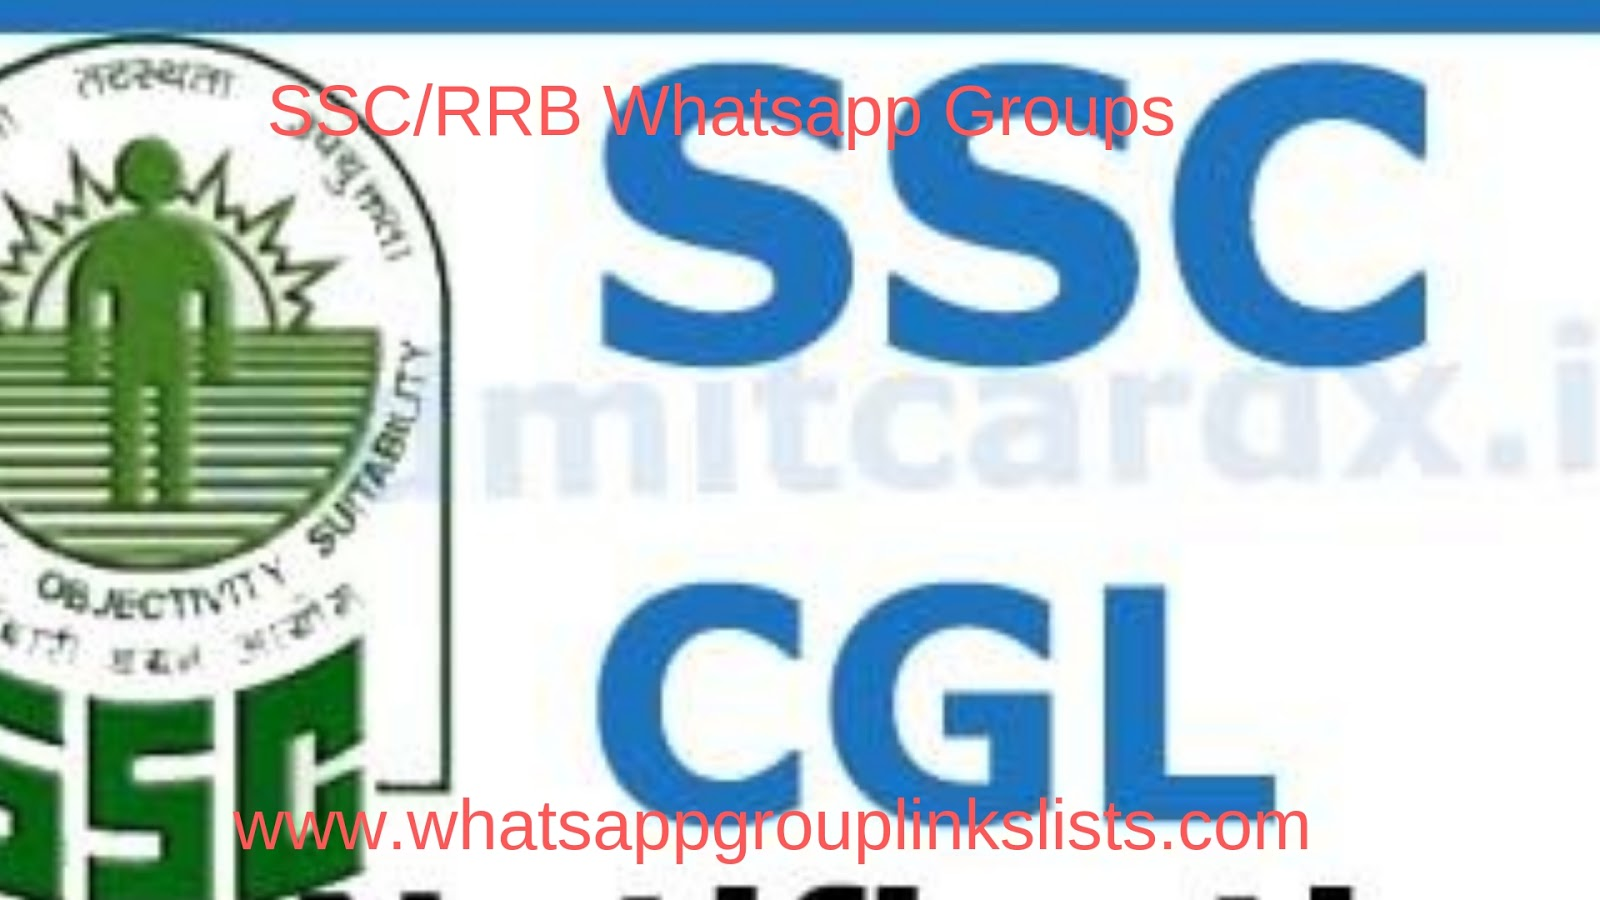 Join SSC/RRB Whatsapp Group Links List